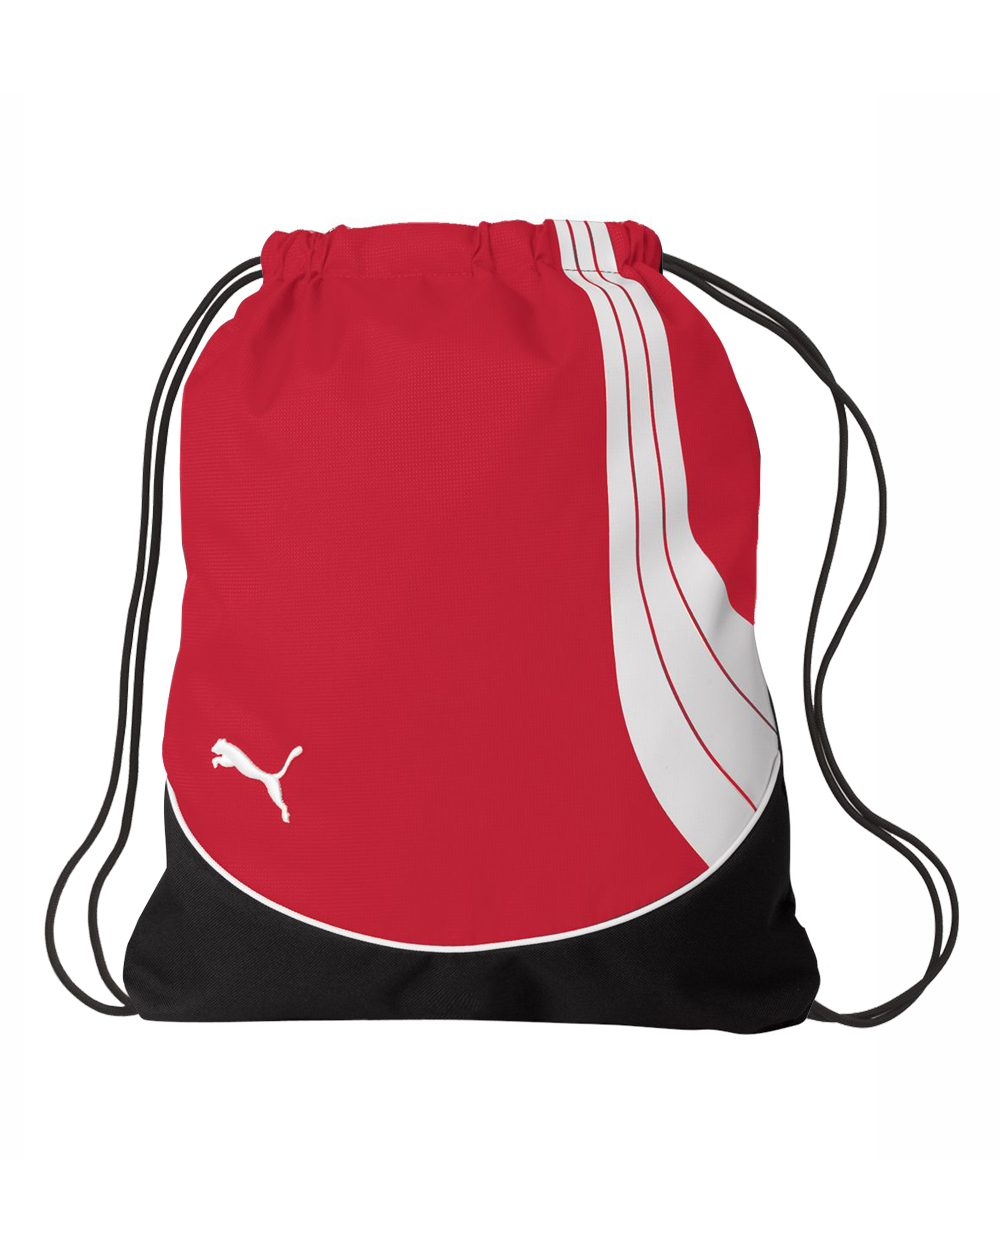 PUMA PMAT1006 - Teamsport Formation Gym Sack